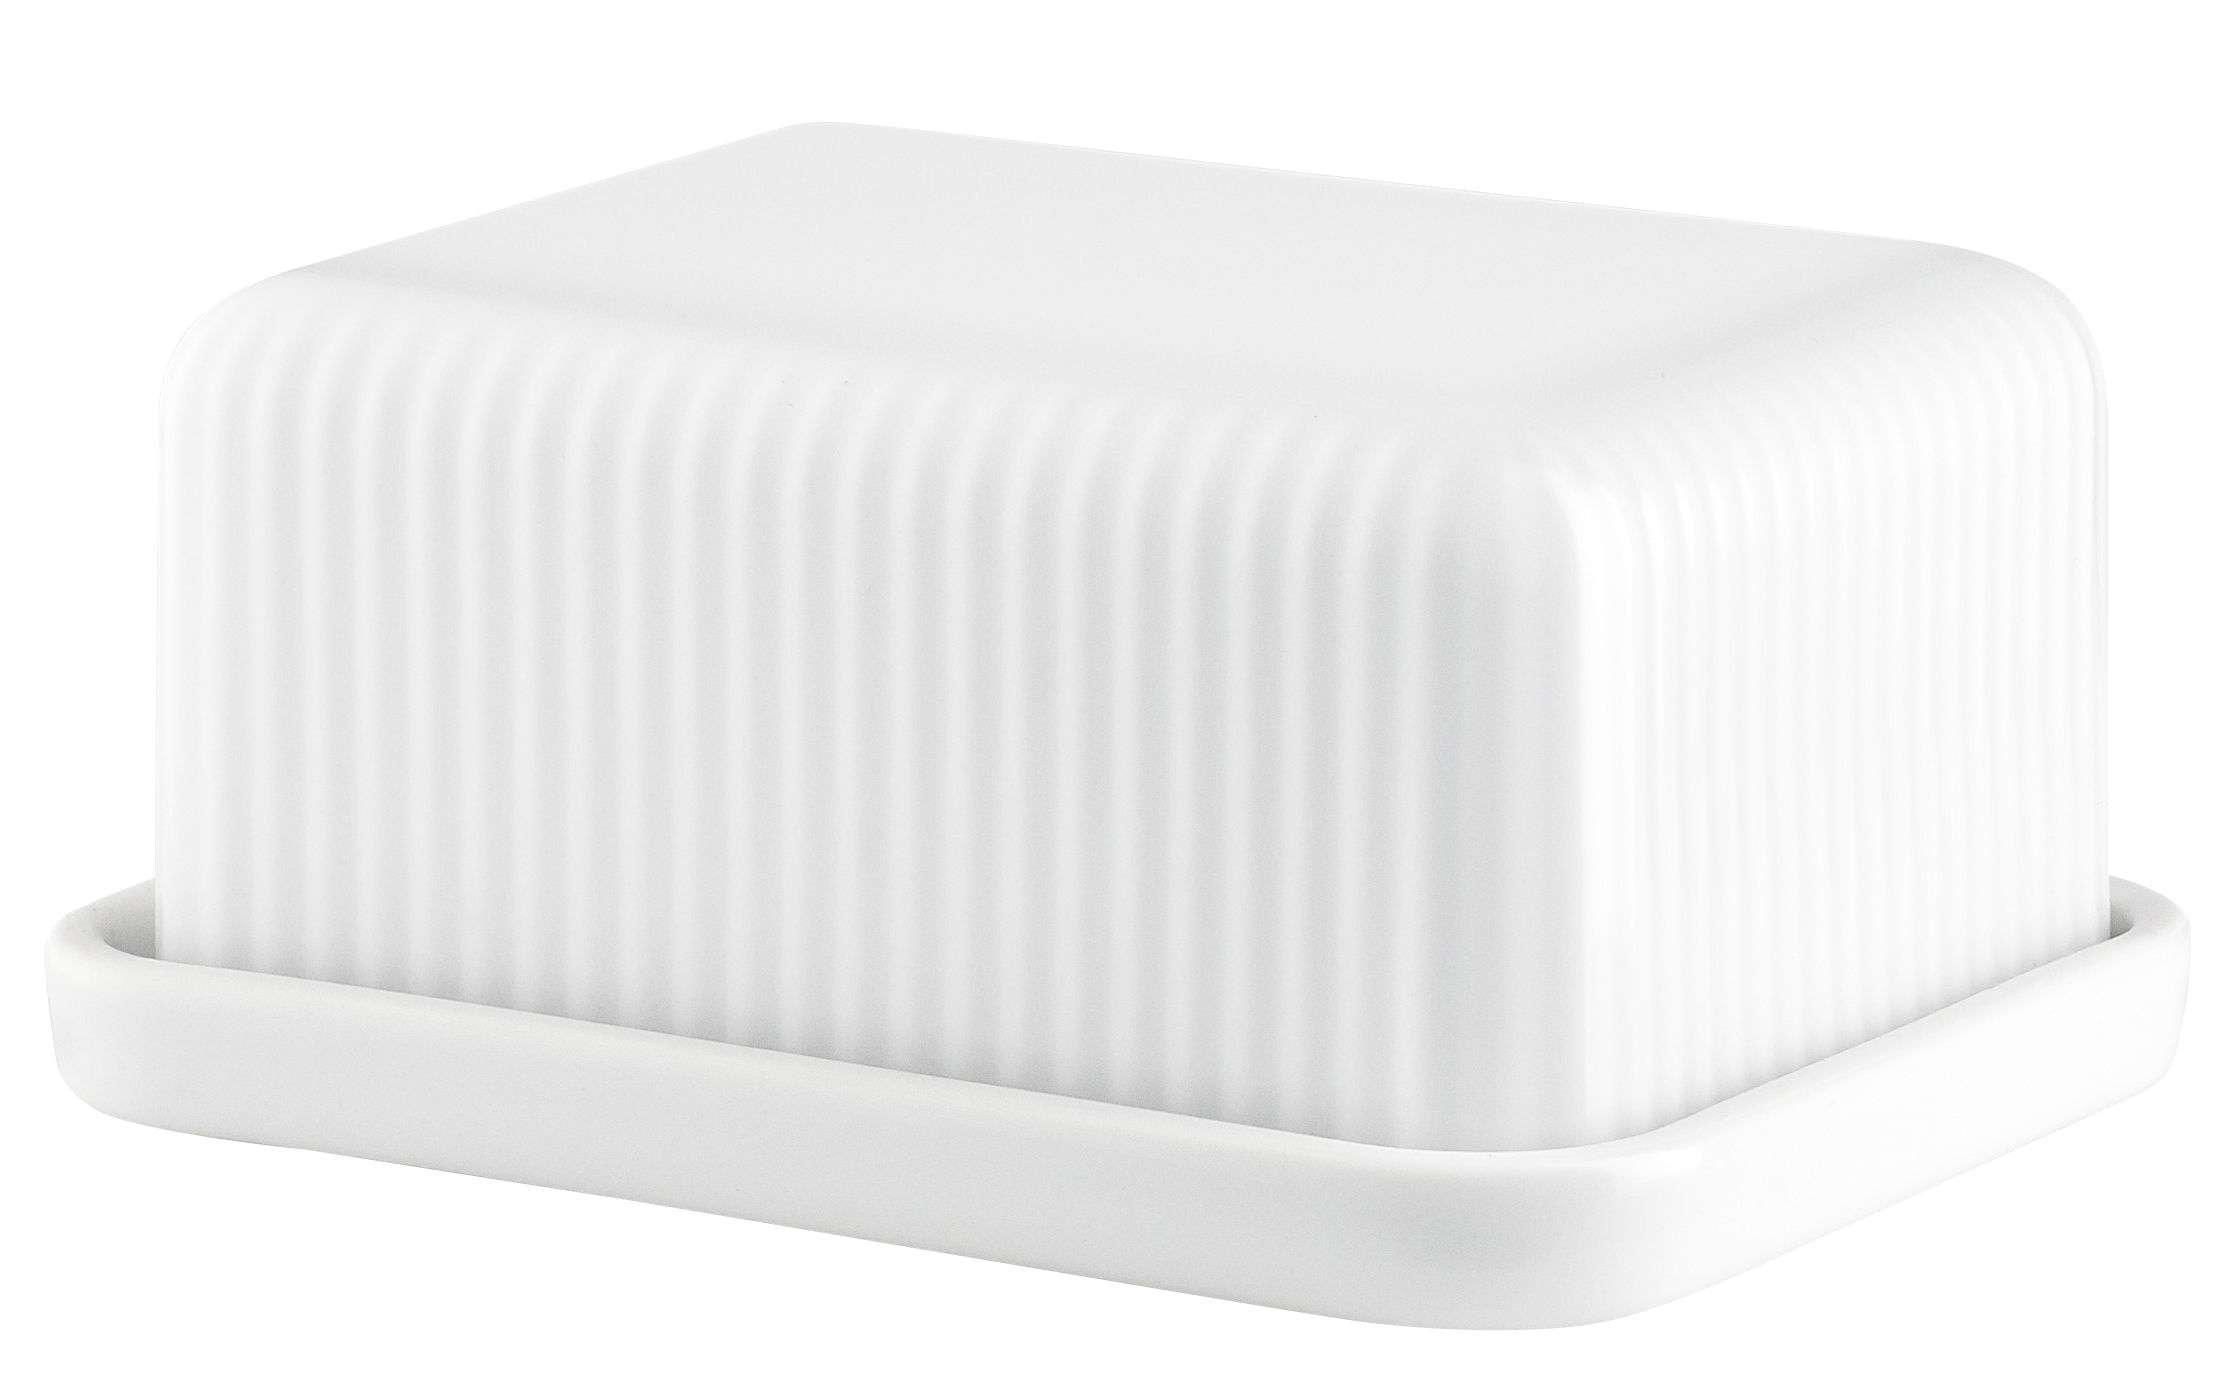 Arts de la table - Accessoires - Beurrier Legio Nova / 12.7 x 10 cm - Eva Trio - Small / Blanc - Porcelaine